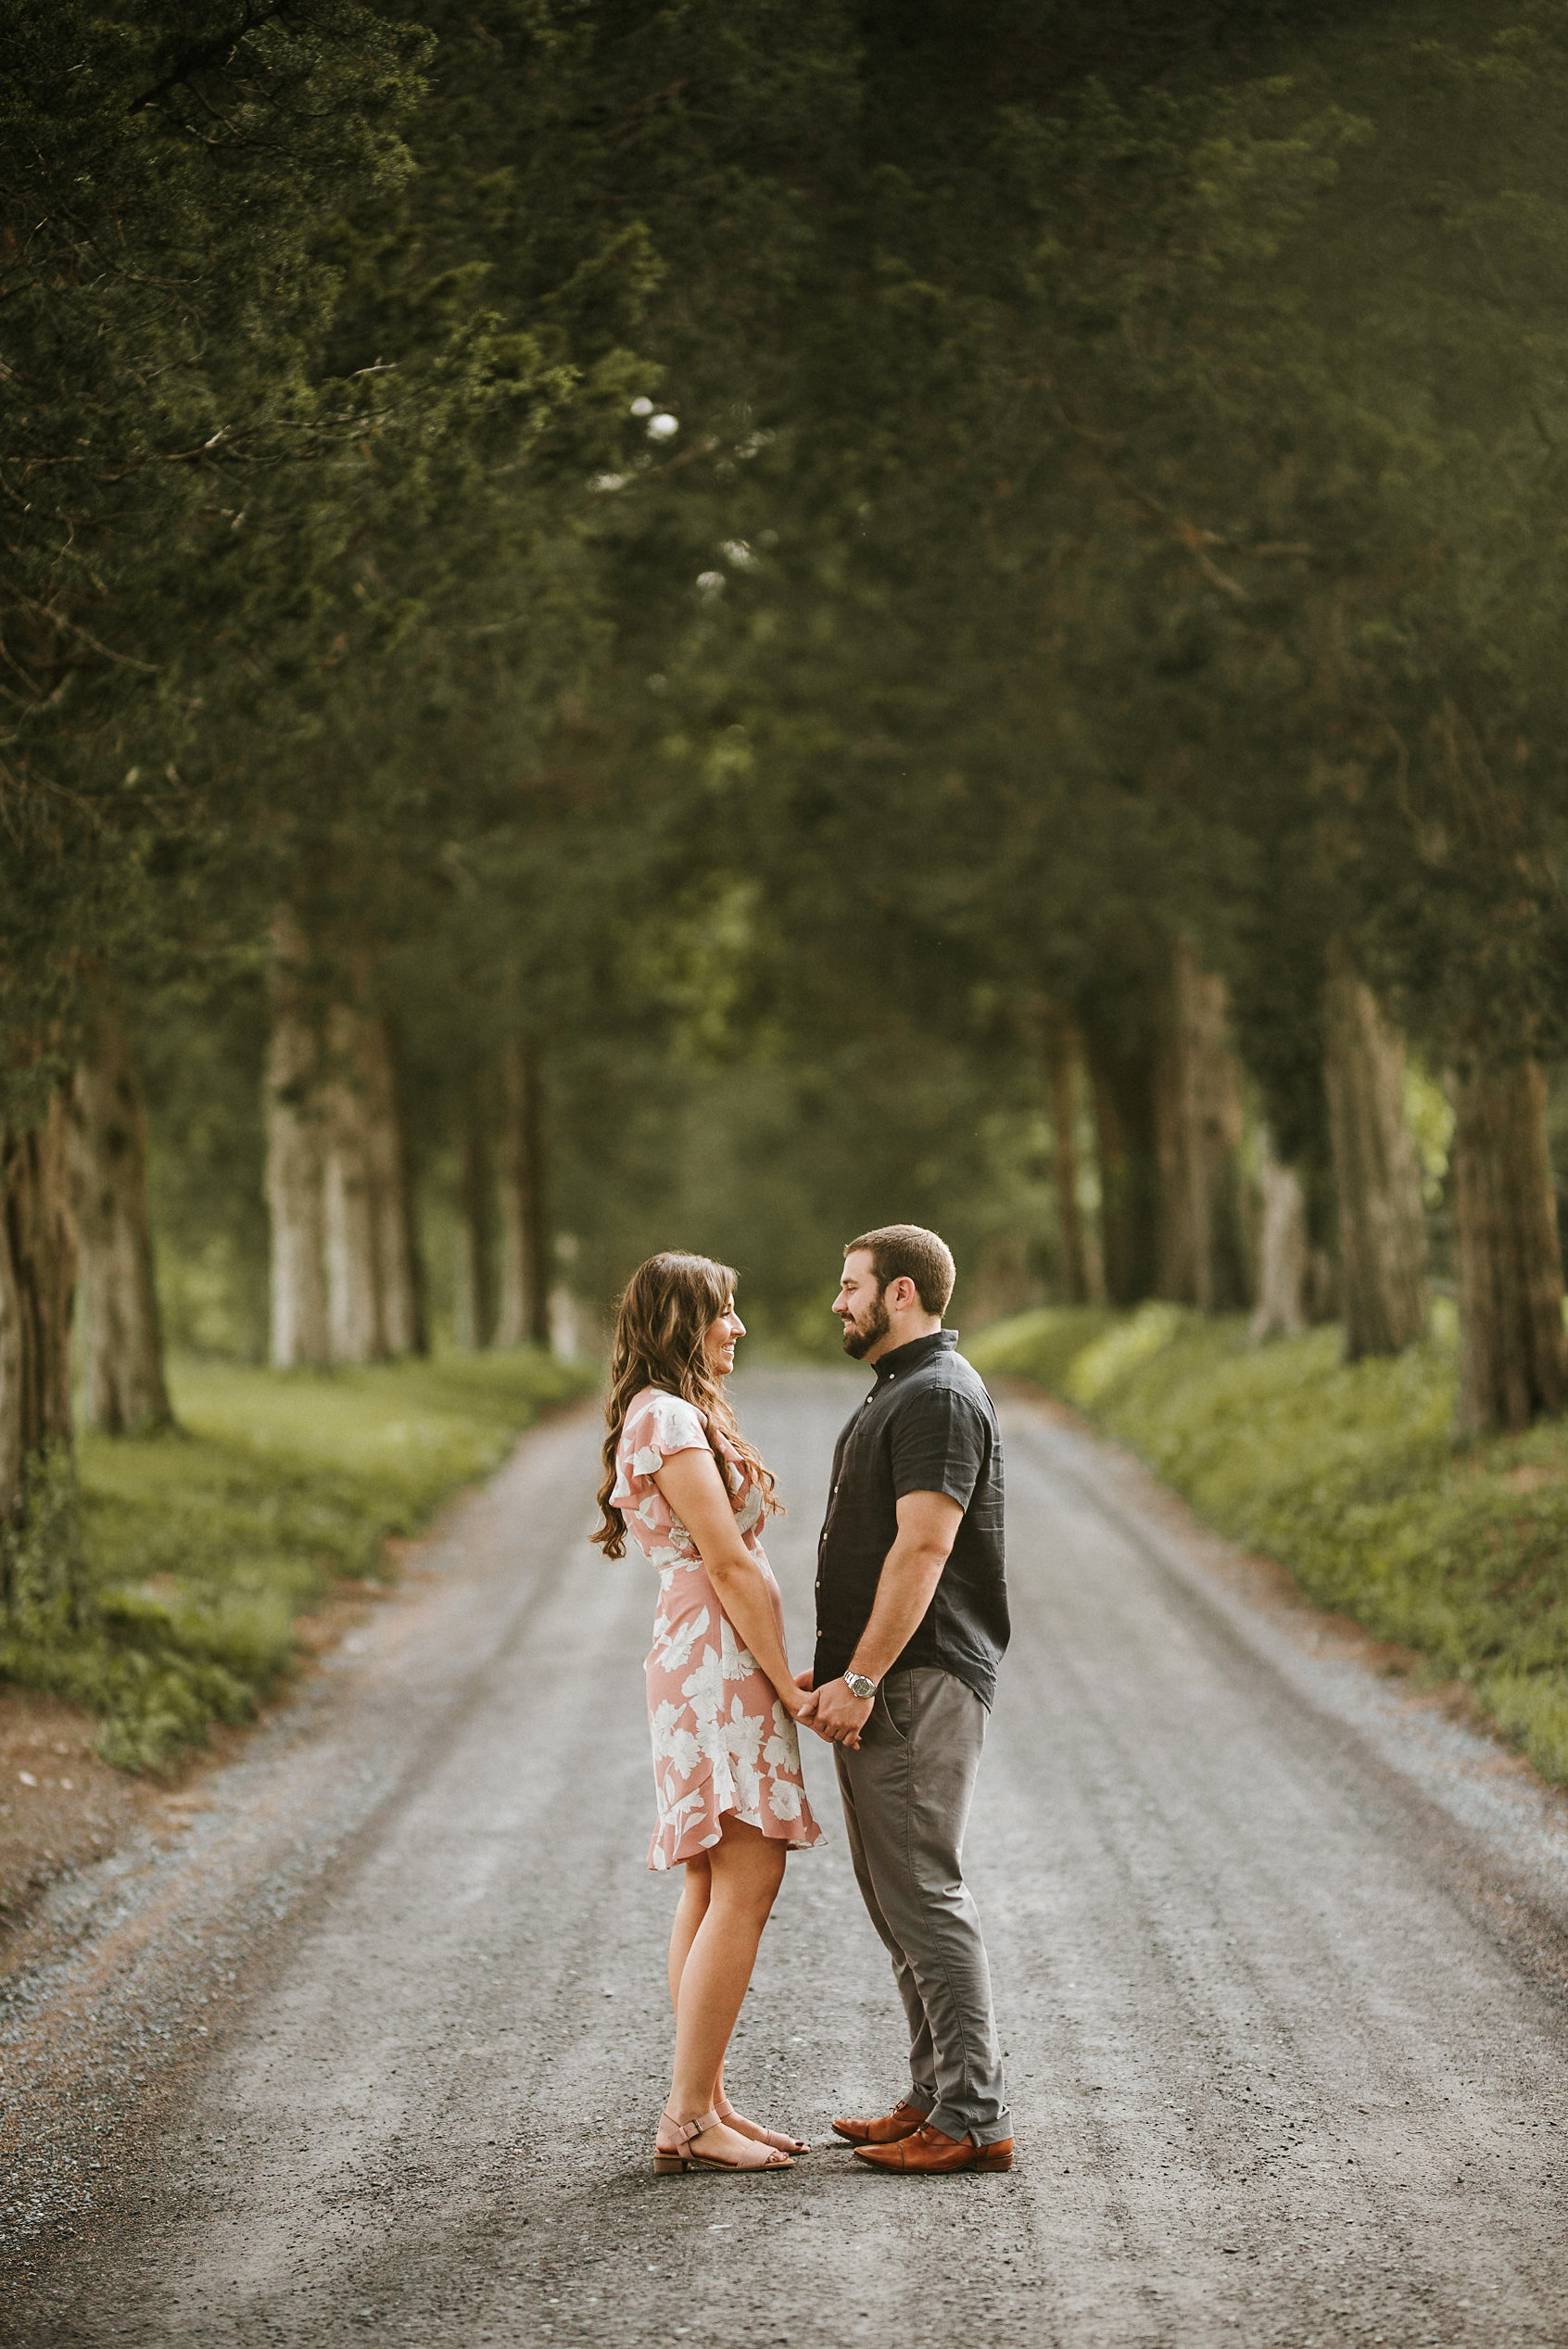 Couple standing in road facing one another